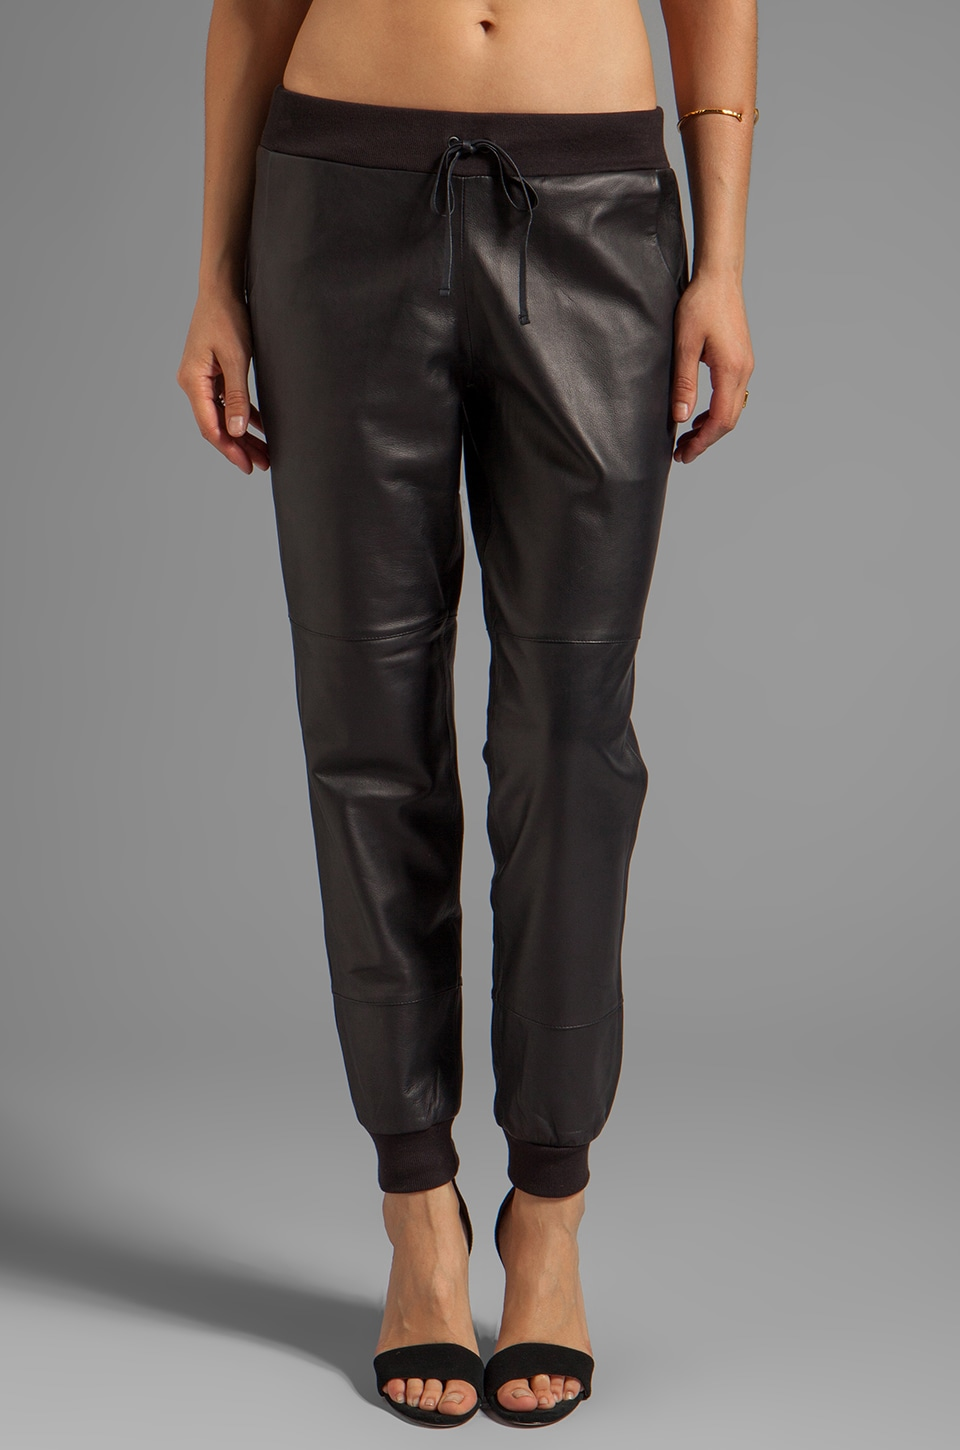 Elizabeth and James Kacey Leather Sweatpant in Black